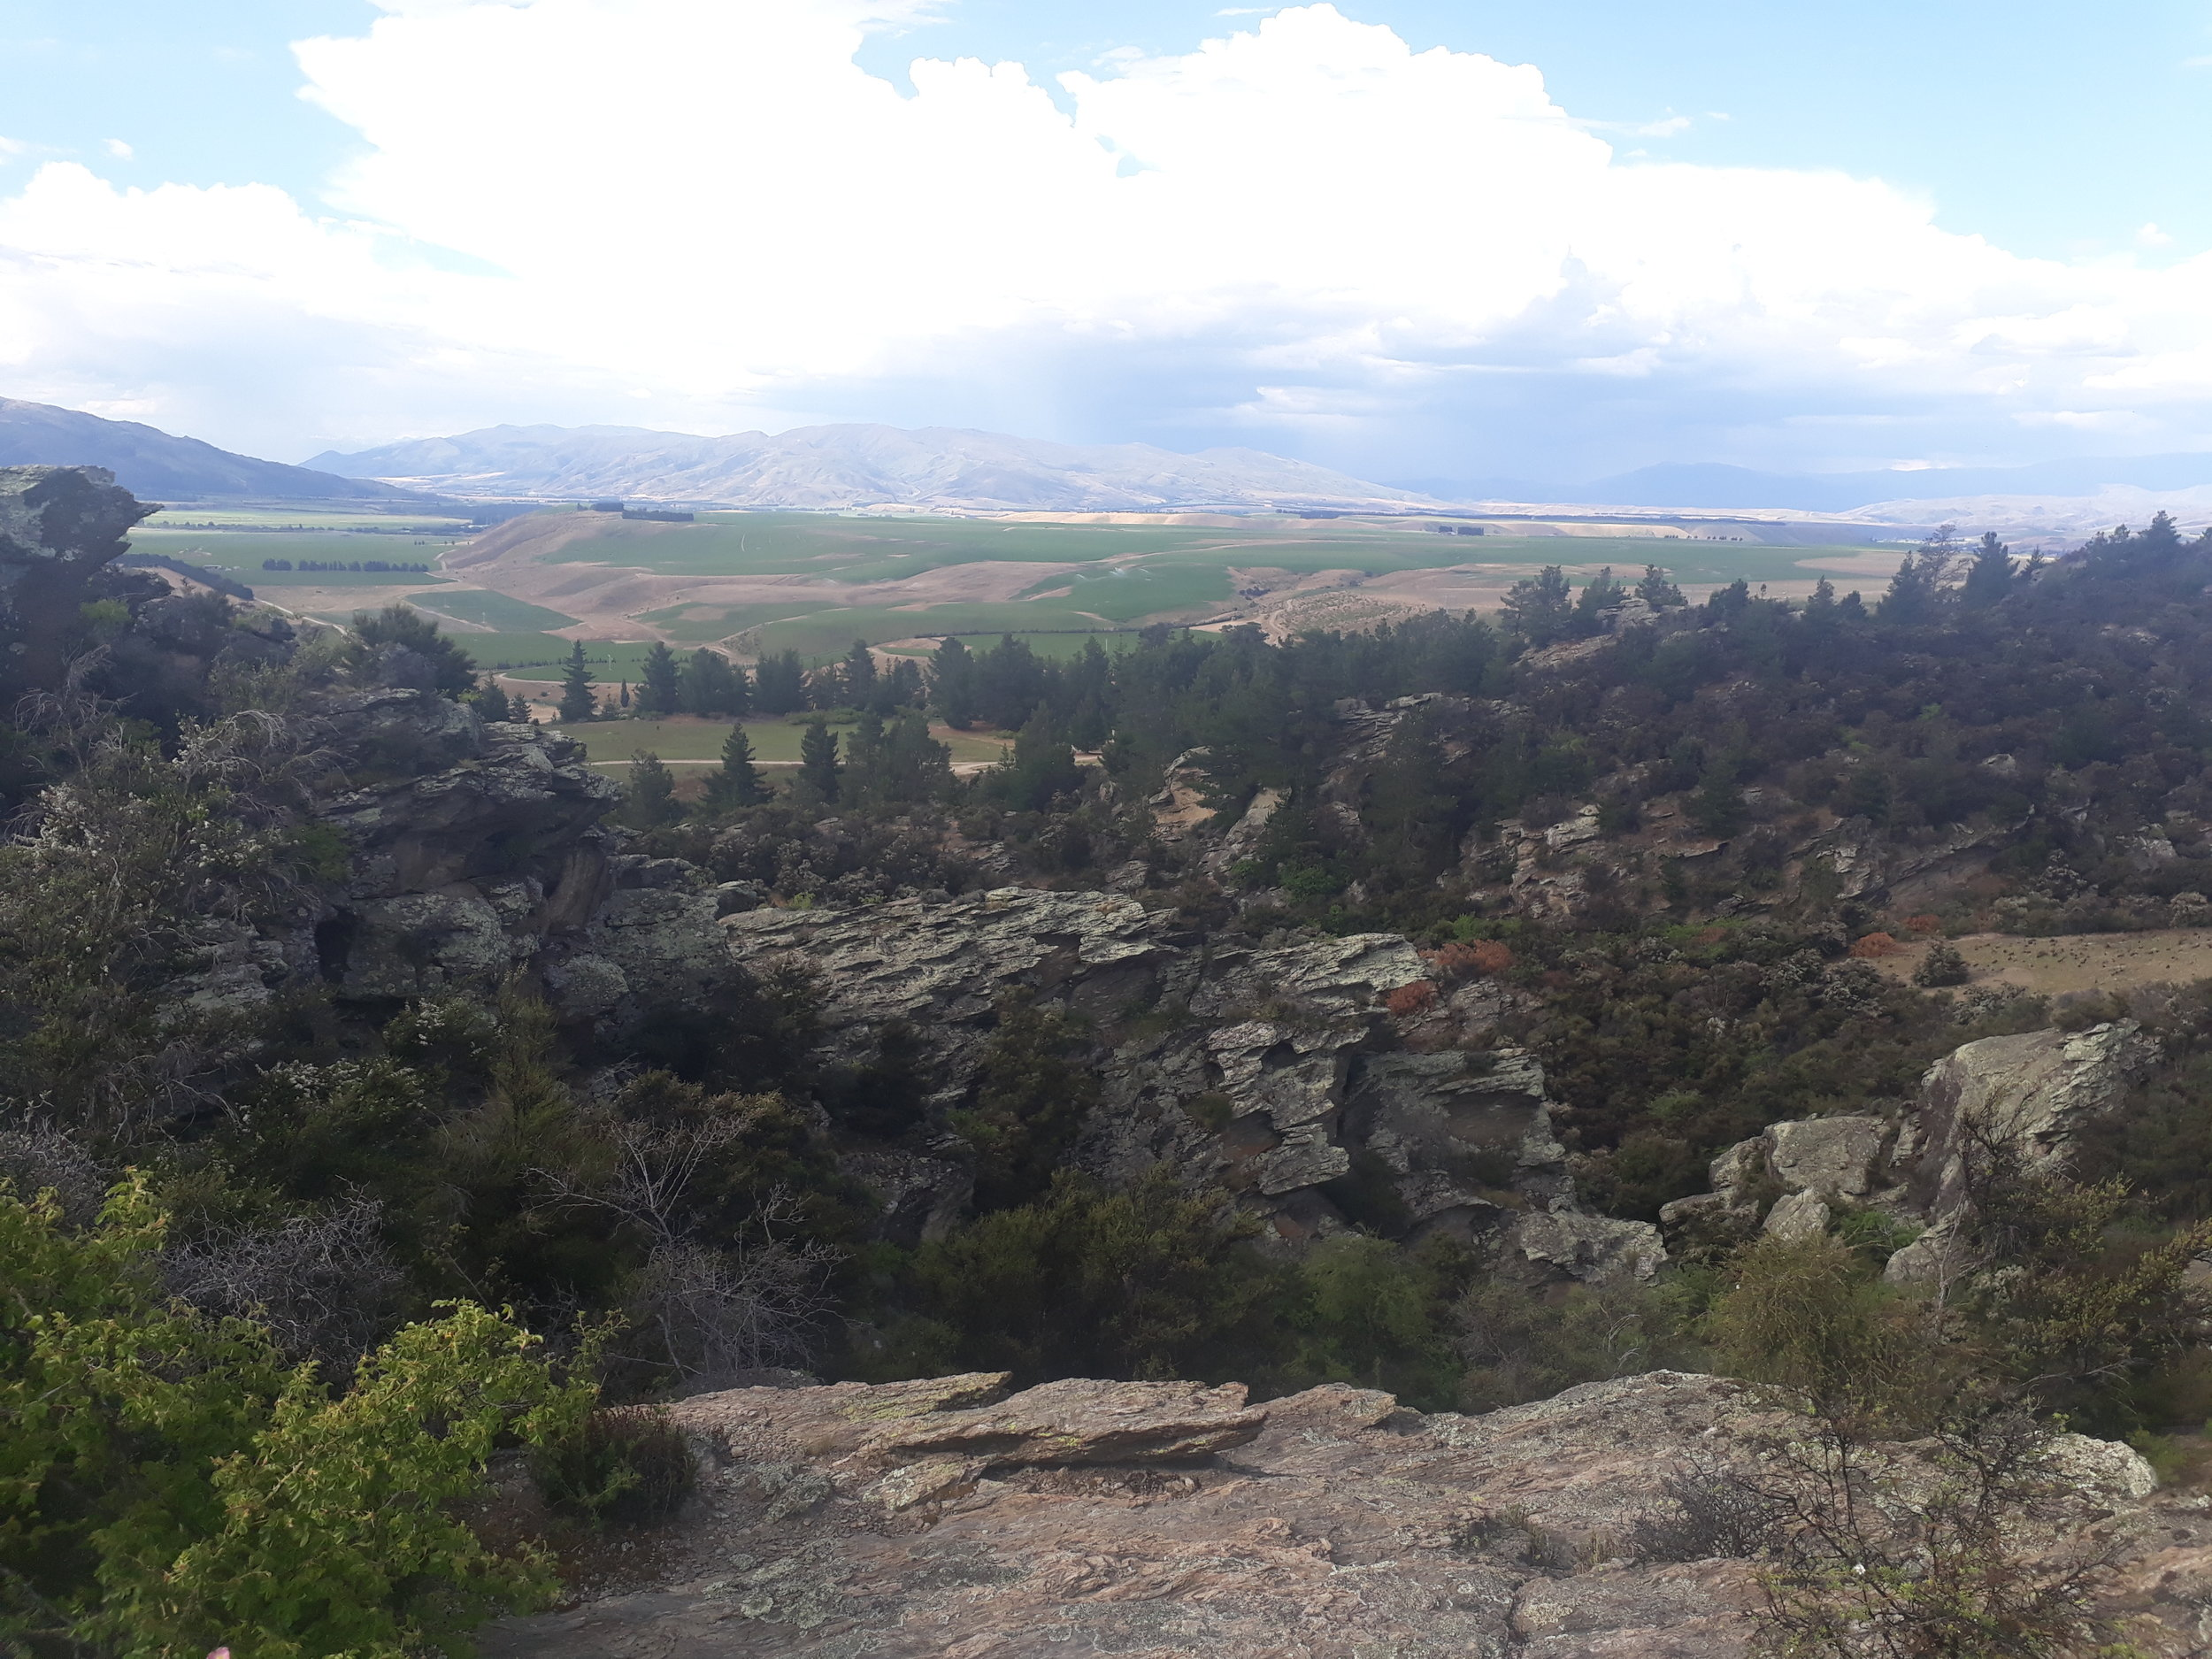 The canyon in the foreground with Bendigo's vineyards stretching away into the distance.